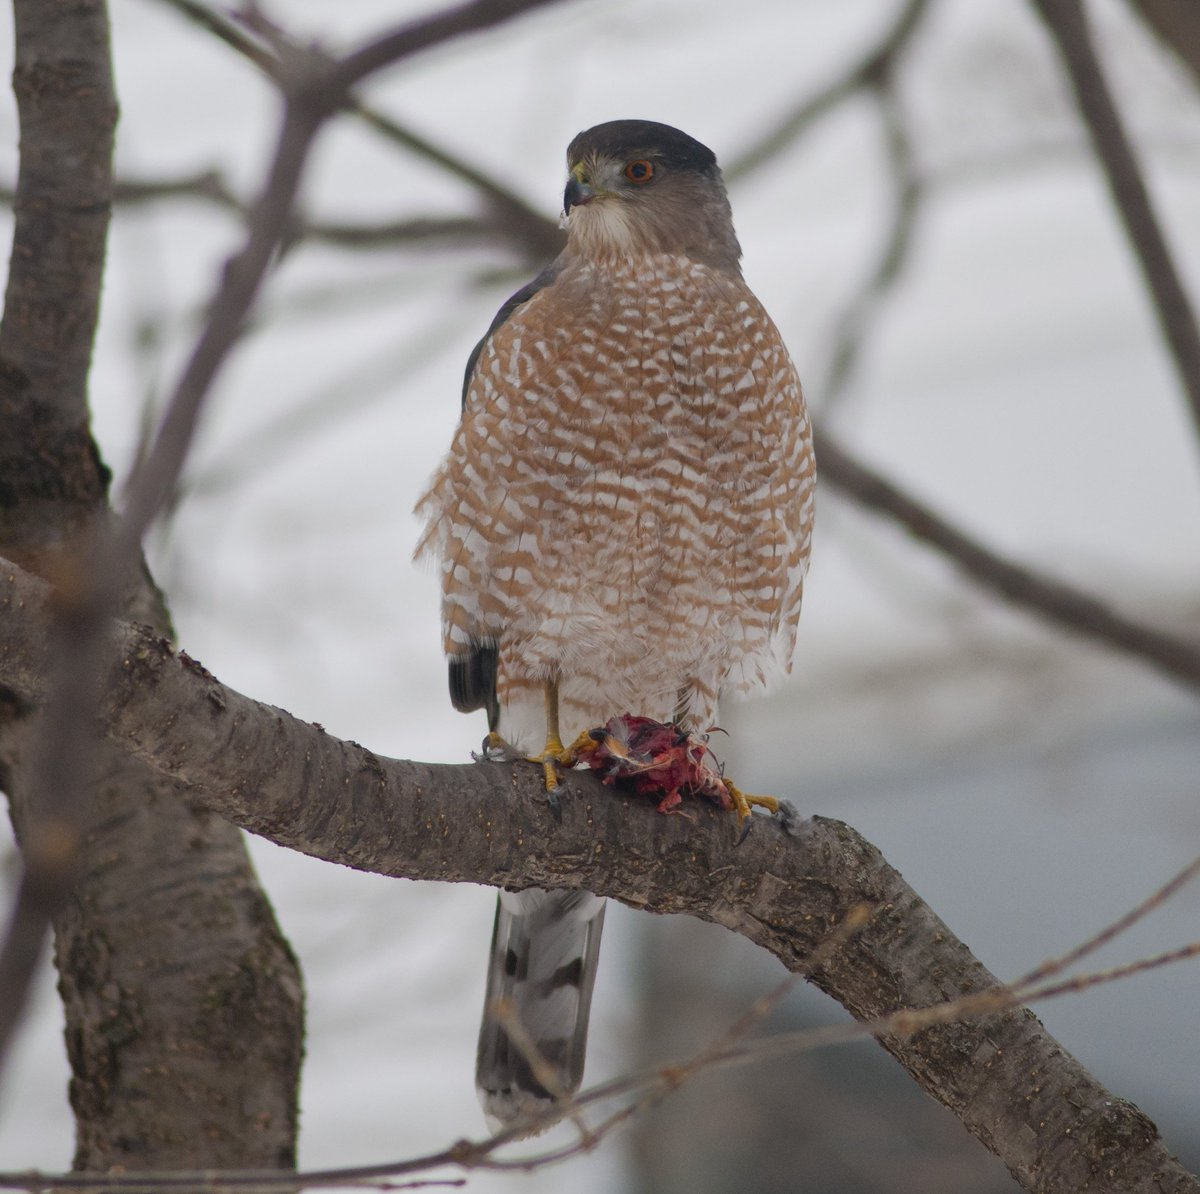 Whats For Lunch Asked Coopers Hawk >> Dr Katie Labarbera On Twitter A Robin And A Cooper S Hawk